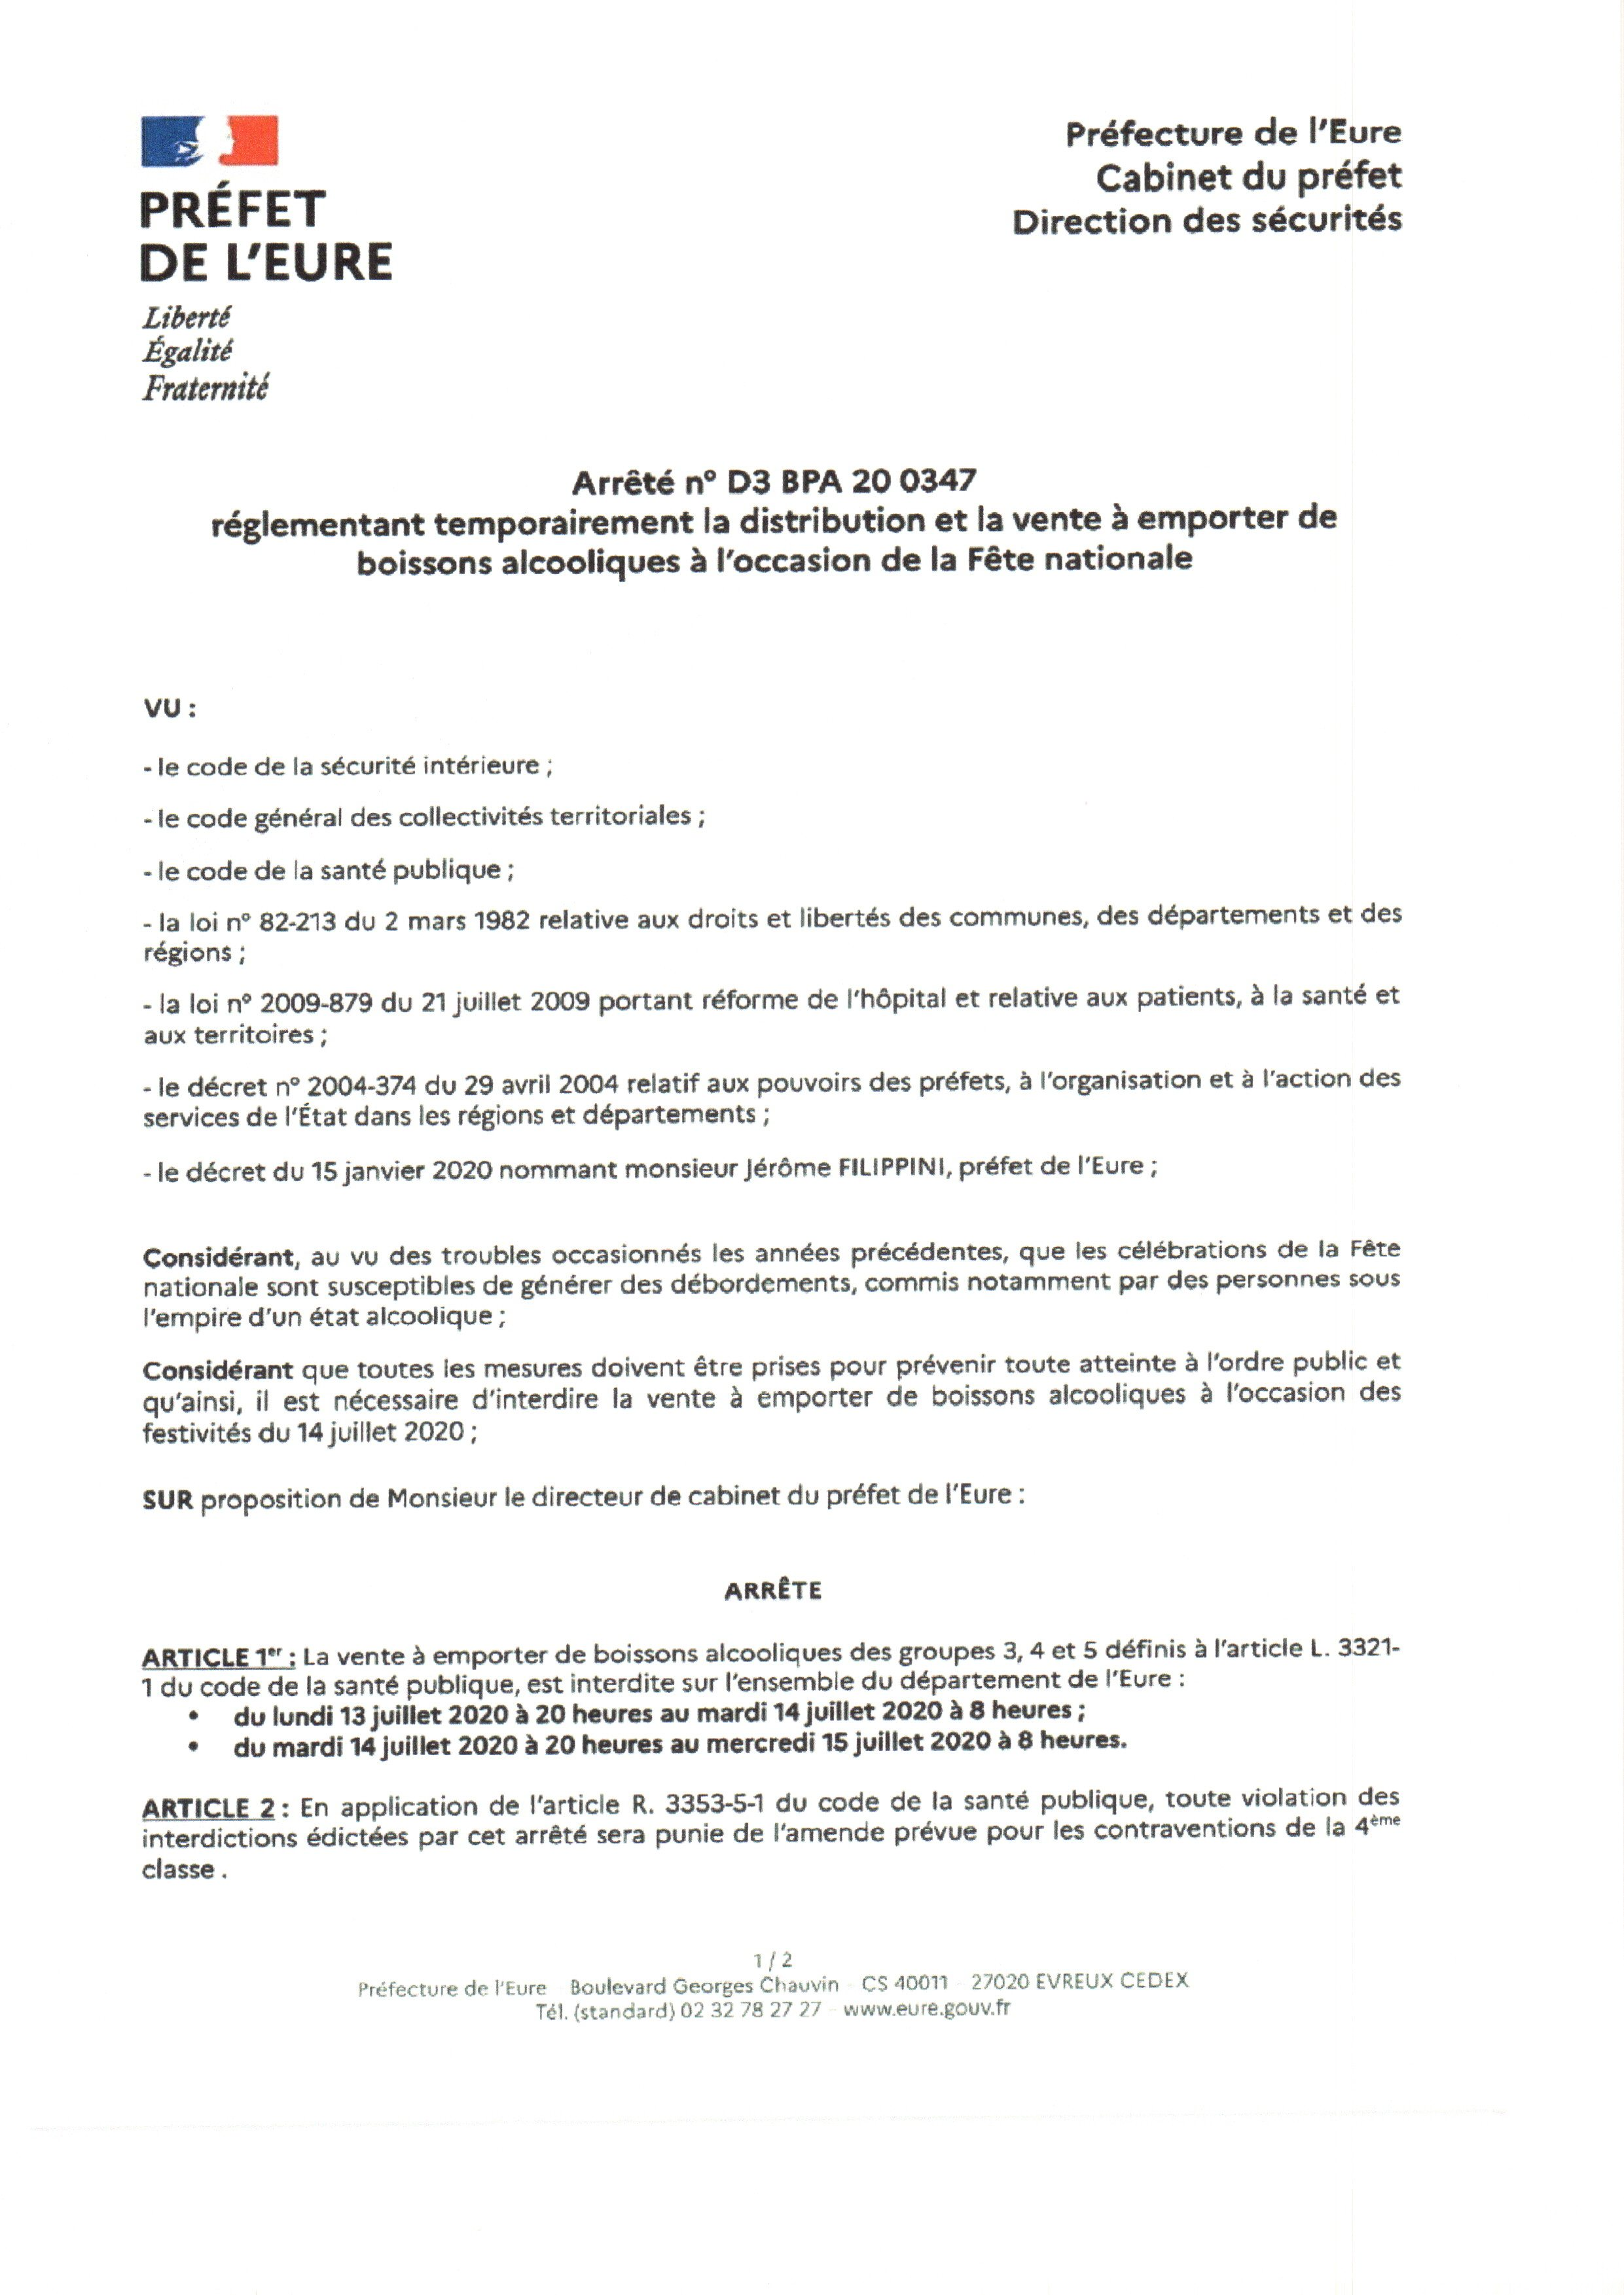 Document_20200706_0007